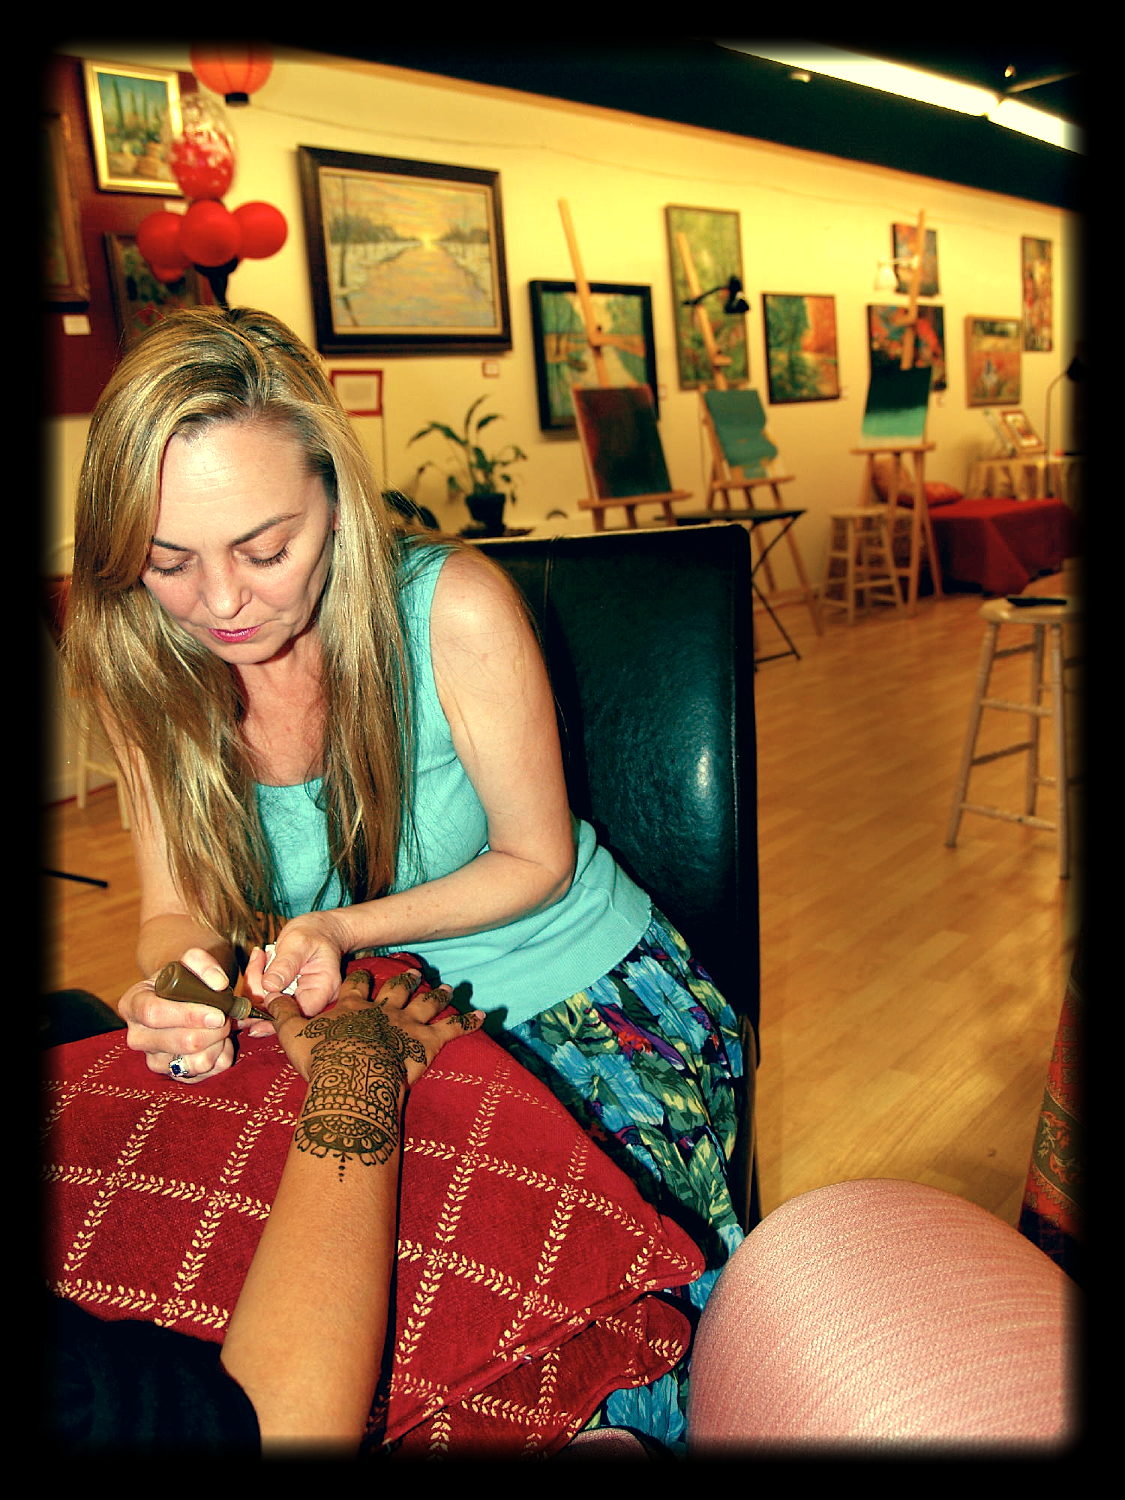 Henna Party Los Angeles : The art parlor studio gallery by party henna los